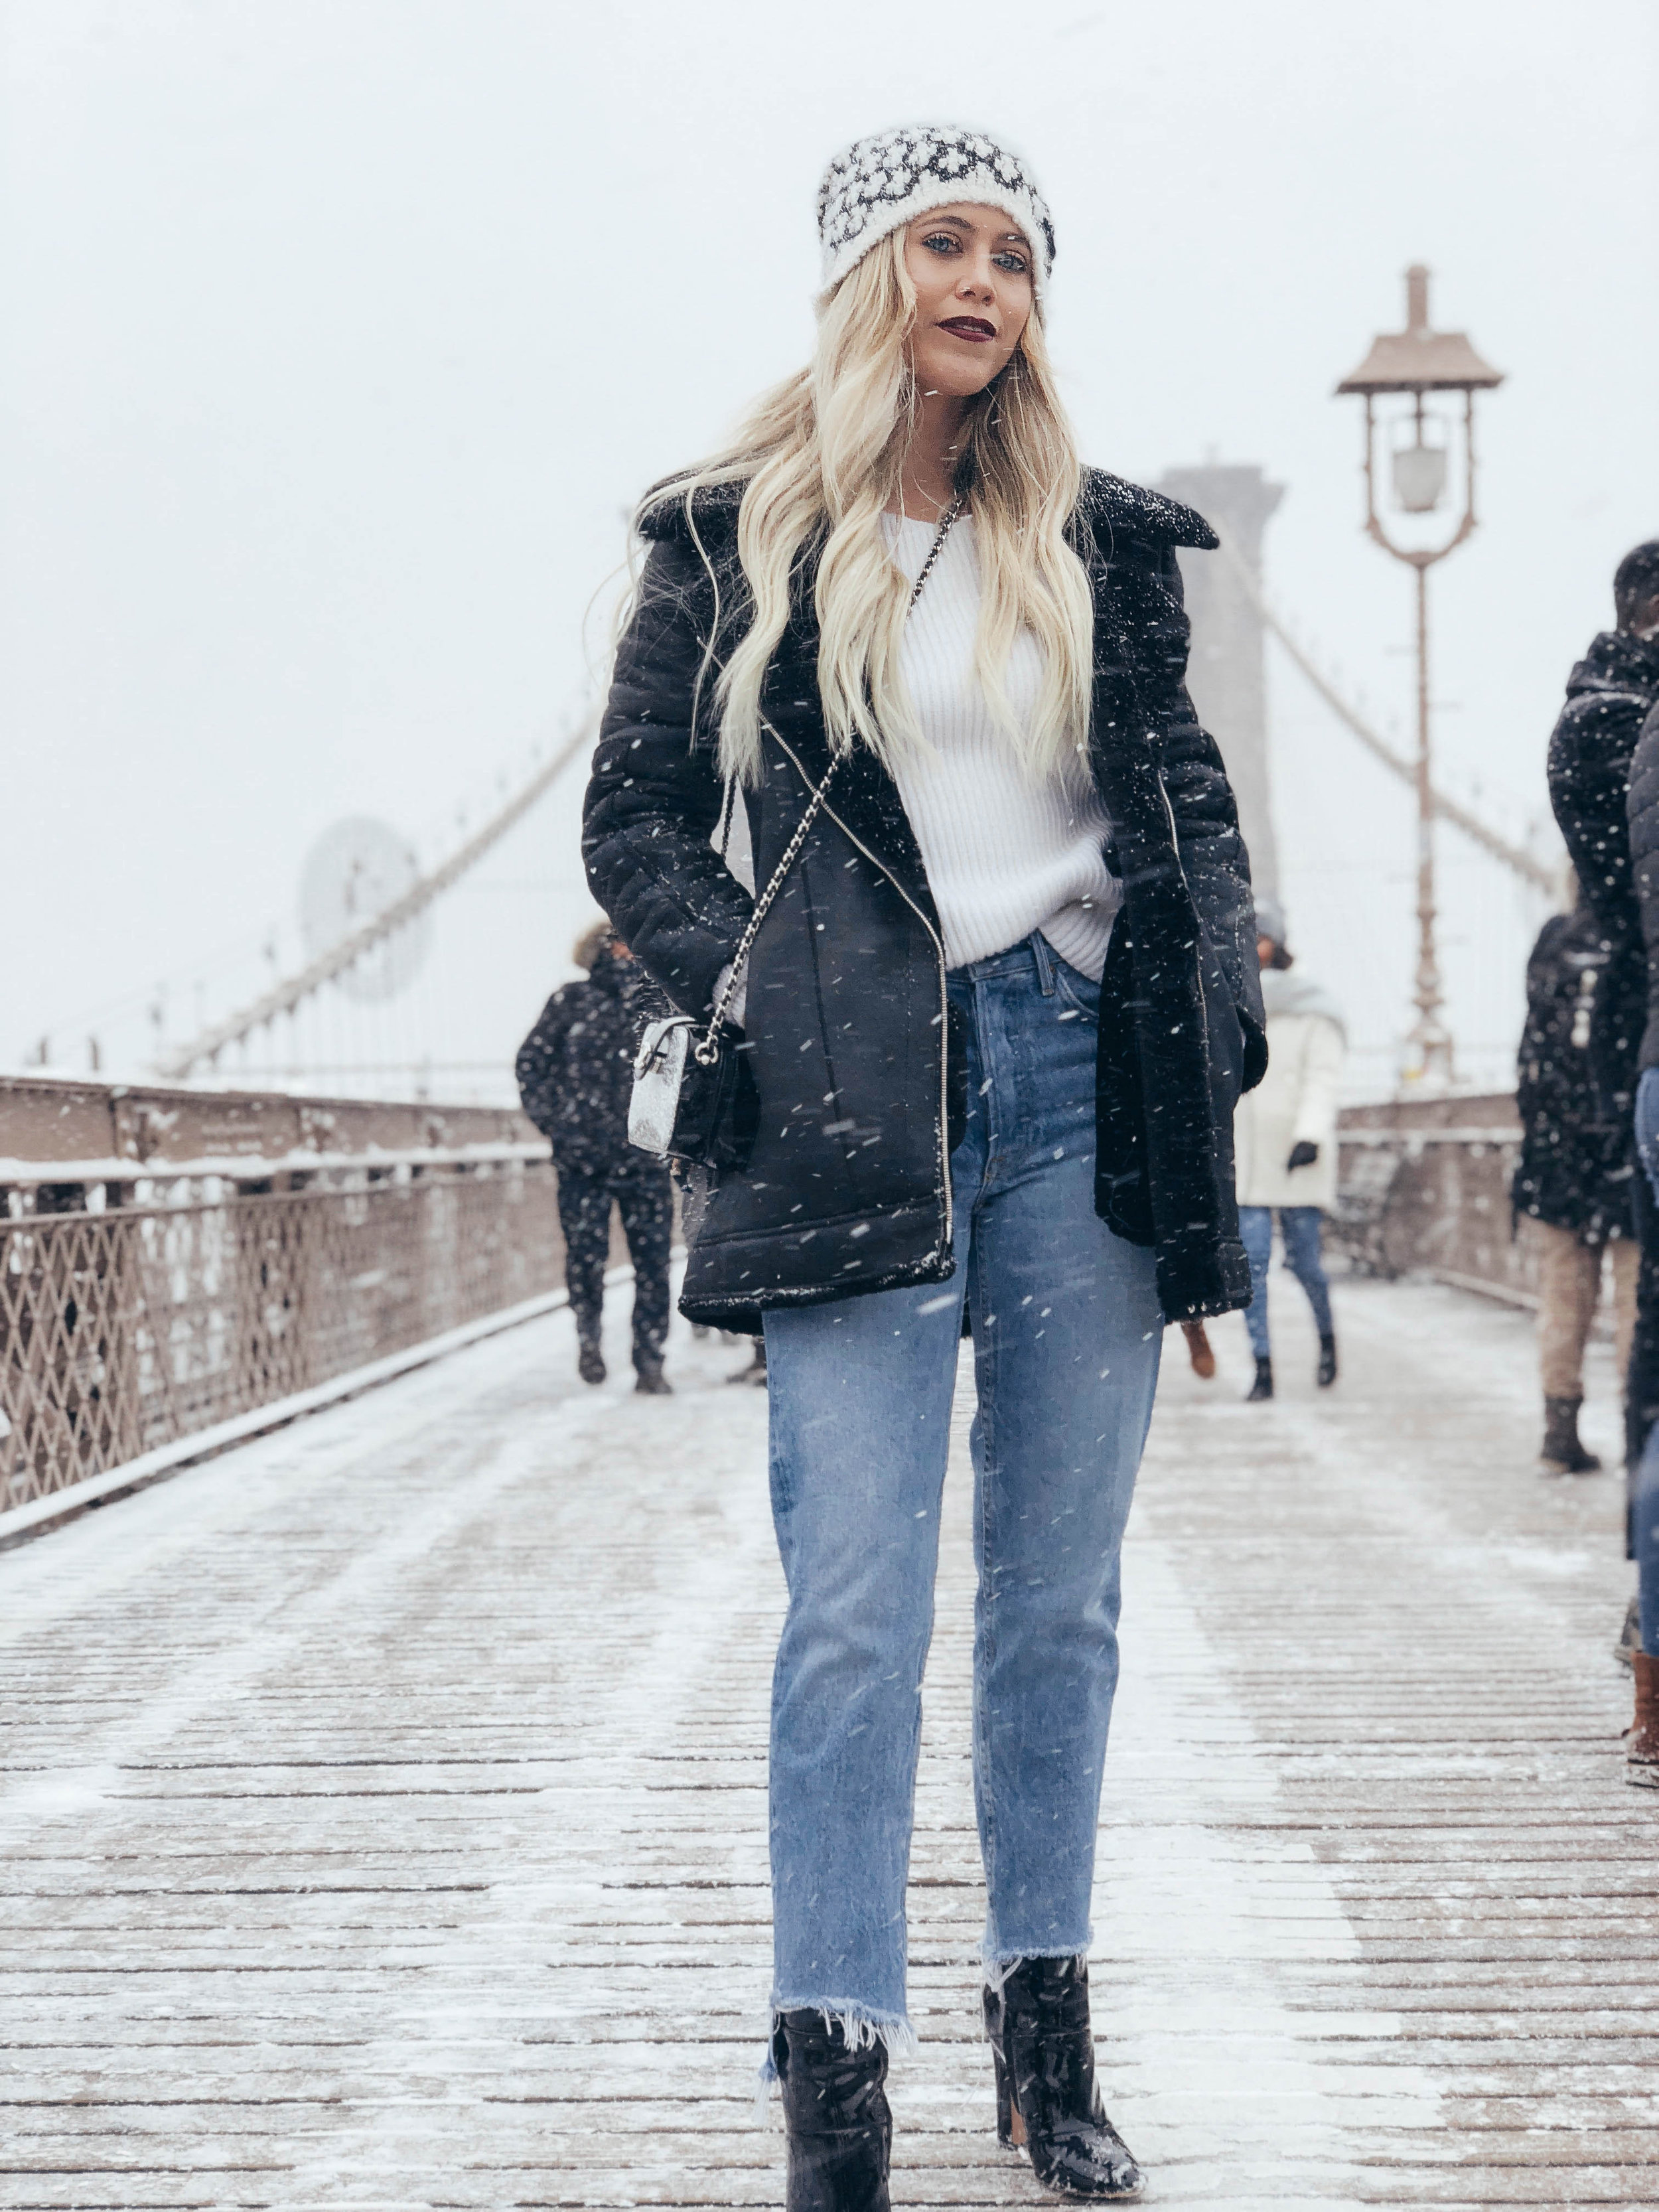 Grlfrnd jeans and L'agence coat topped with Chanel beanie